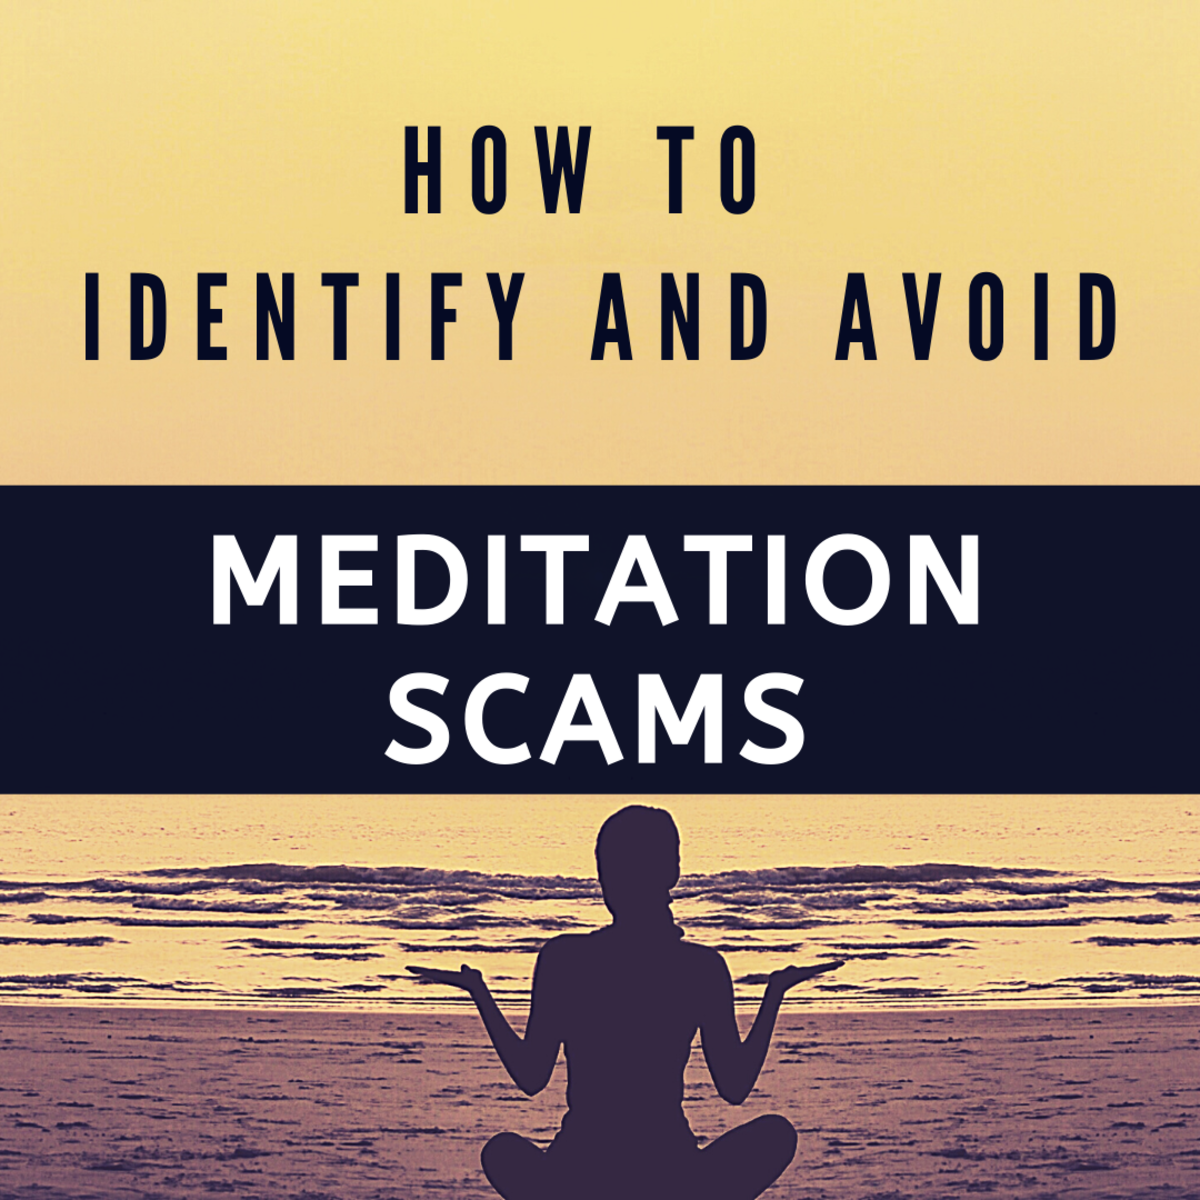 How to Identify and Avoid Meditation Scams?